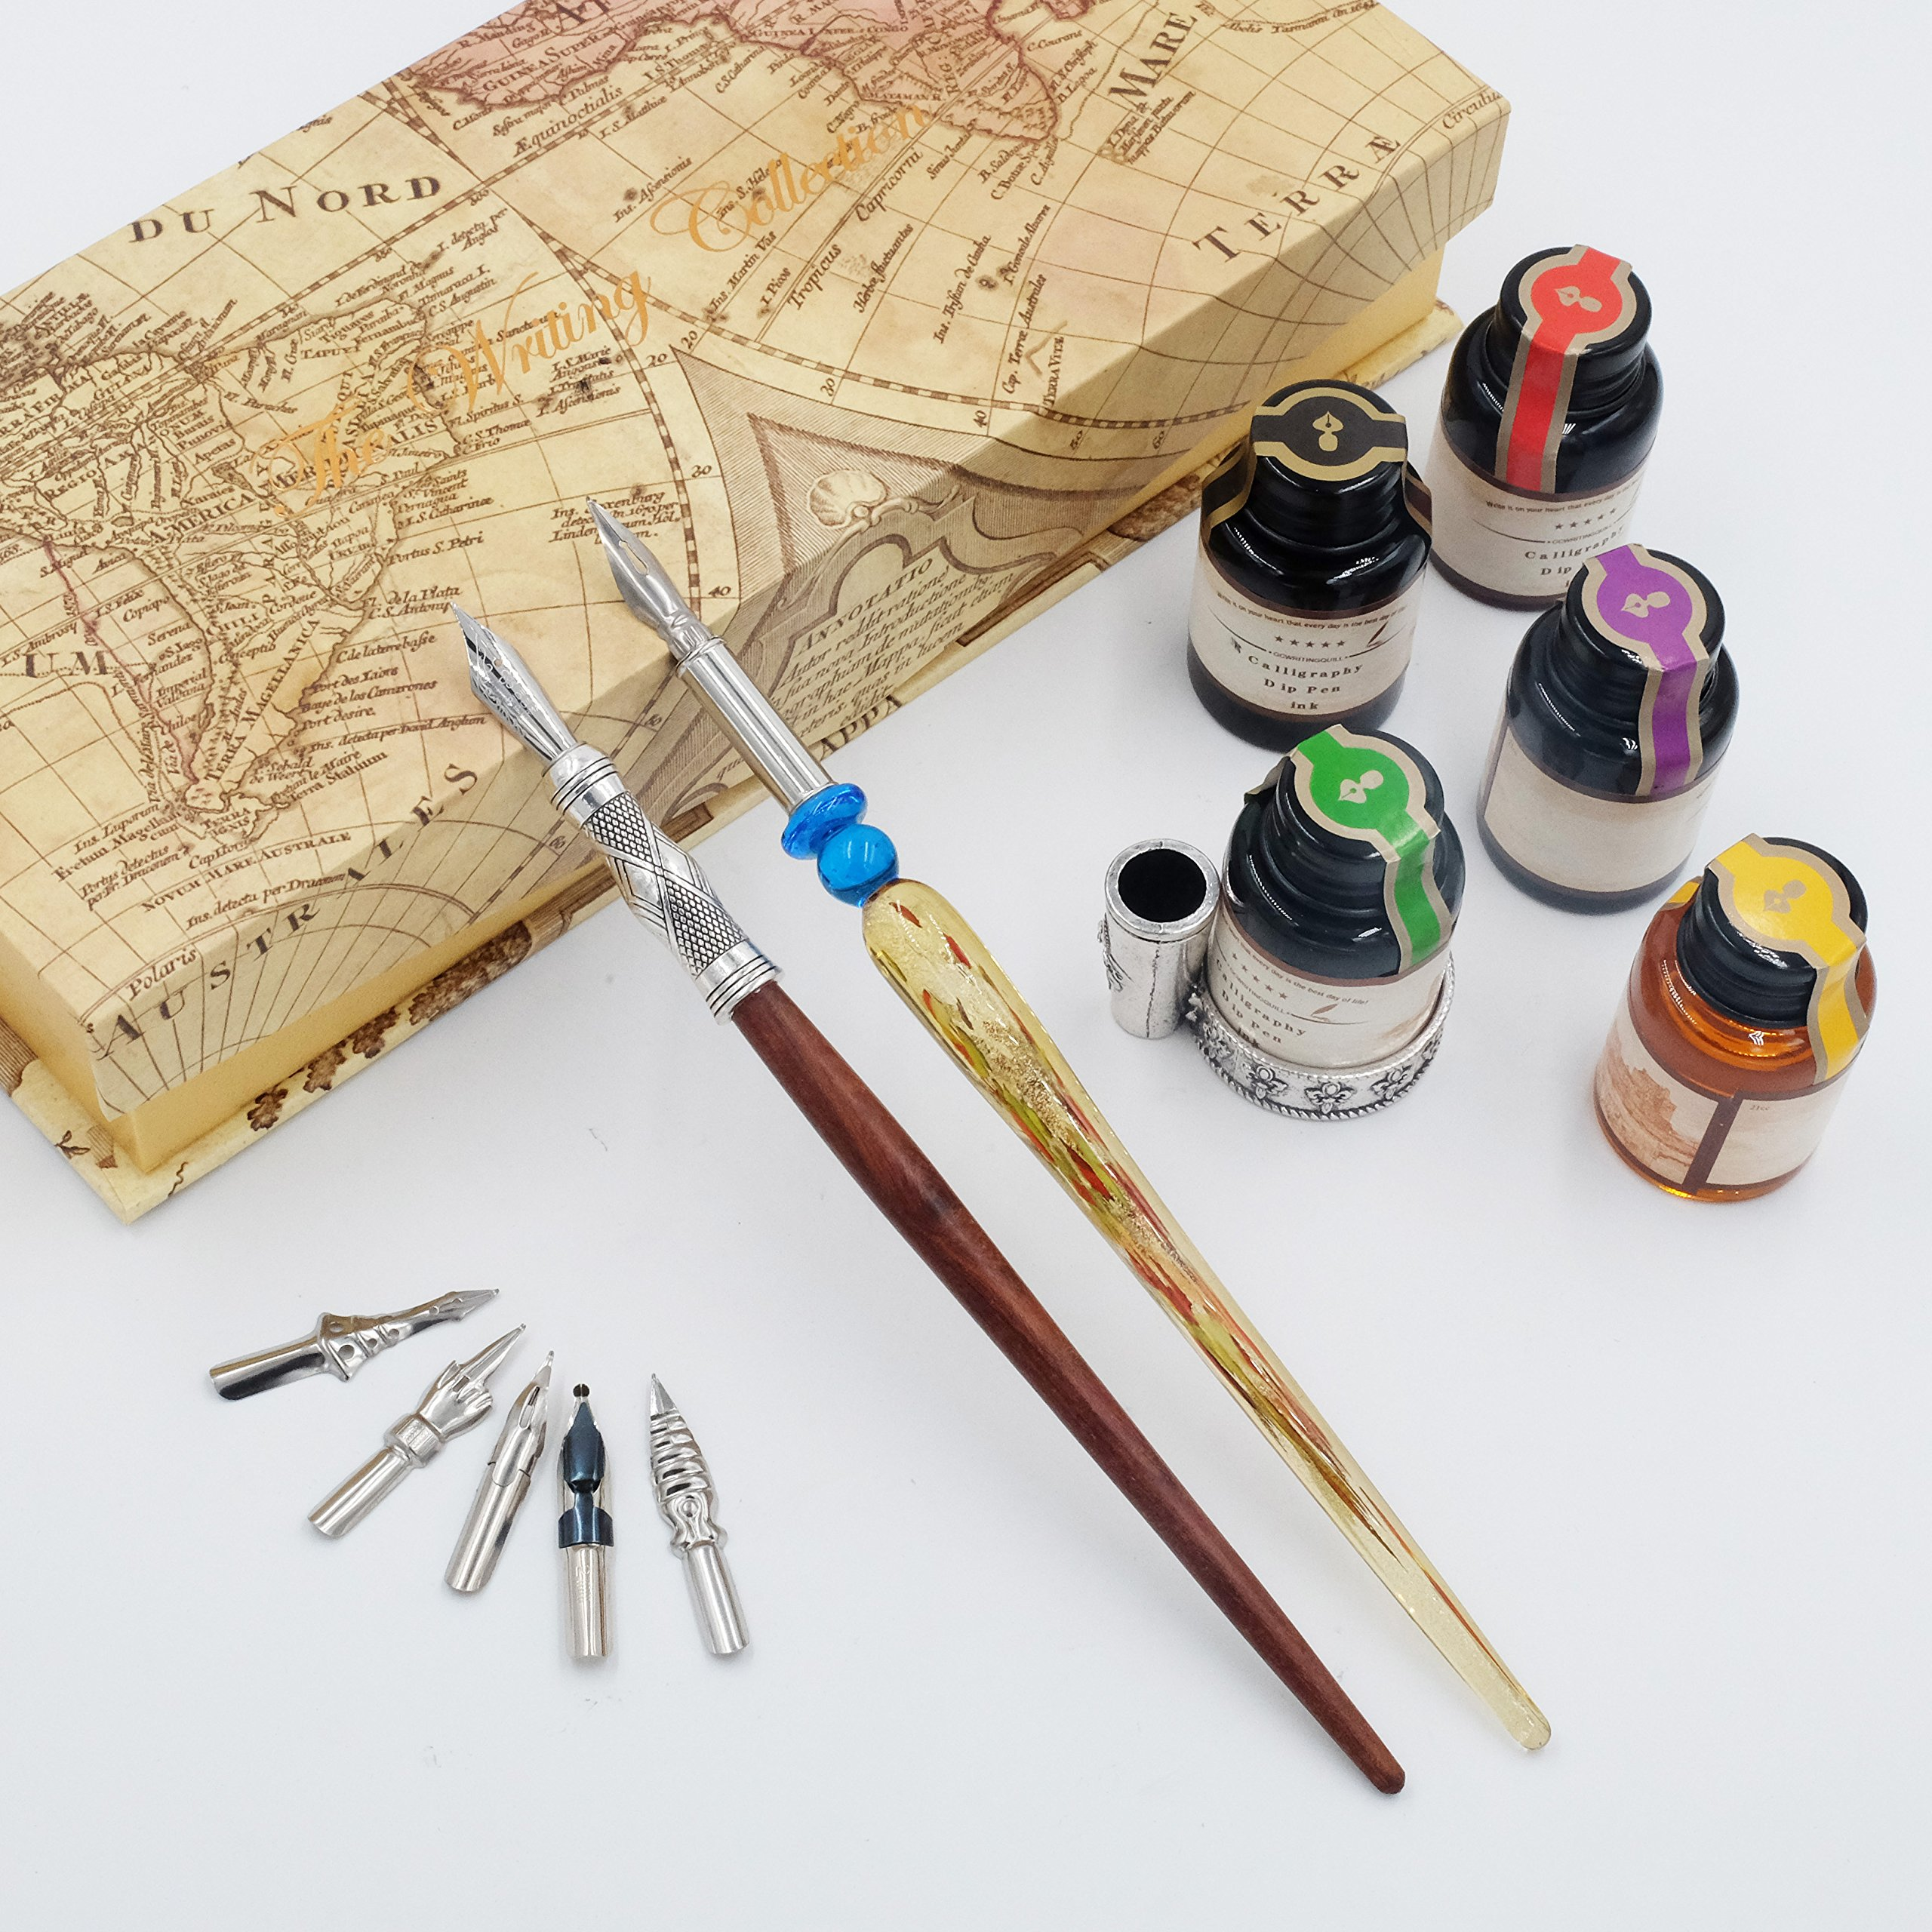 GC QUILL Calligraphy Pen Set-5 Bottle Ink-100% Hand Craft-Wood Pen Stem- Glass Pen Stem-Dip Pen with 7 Nibs&1 Pen Holder by GC QUILL (Image #2)